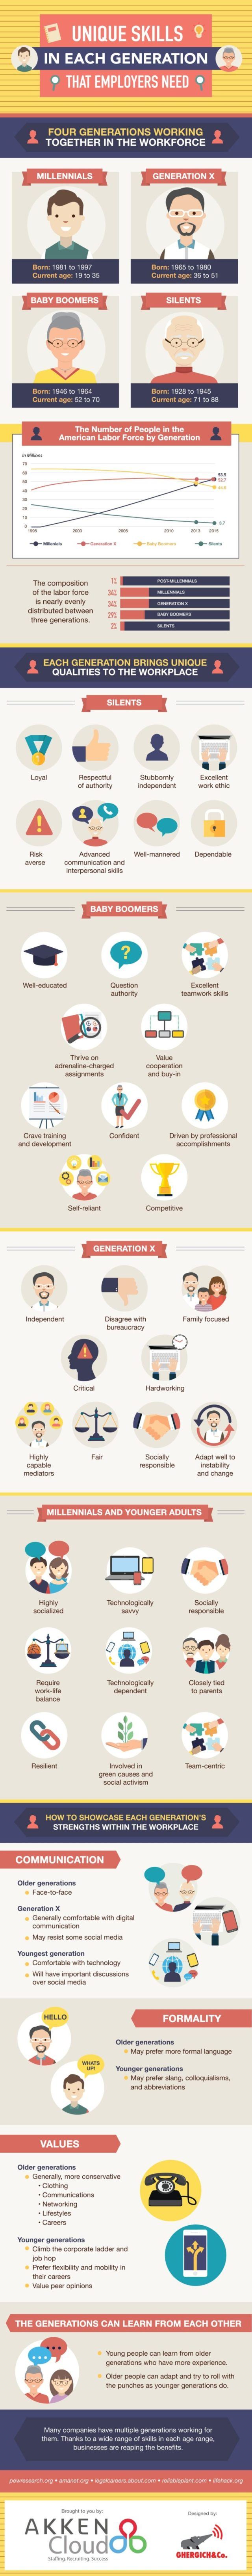 unique-skills-in-each-generation-that-employers-need_573de1f1aa464